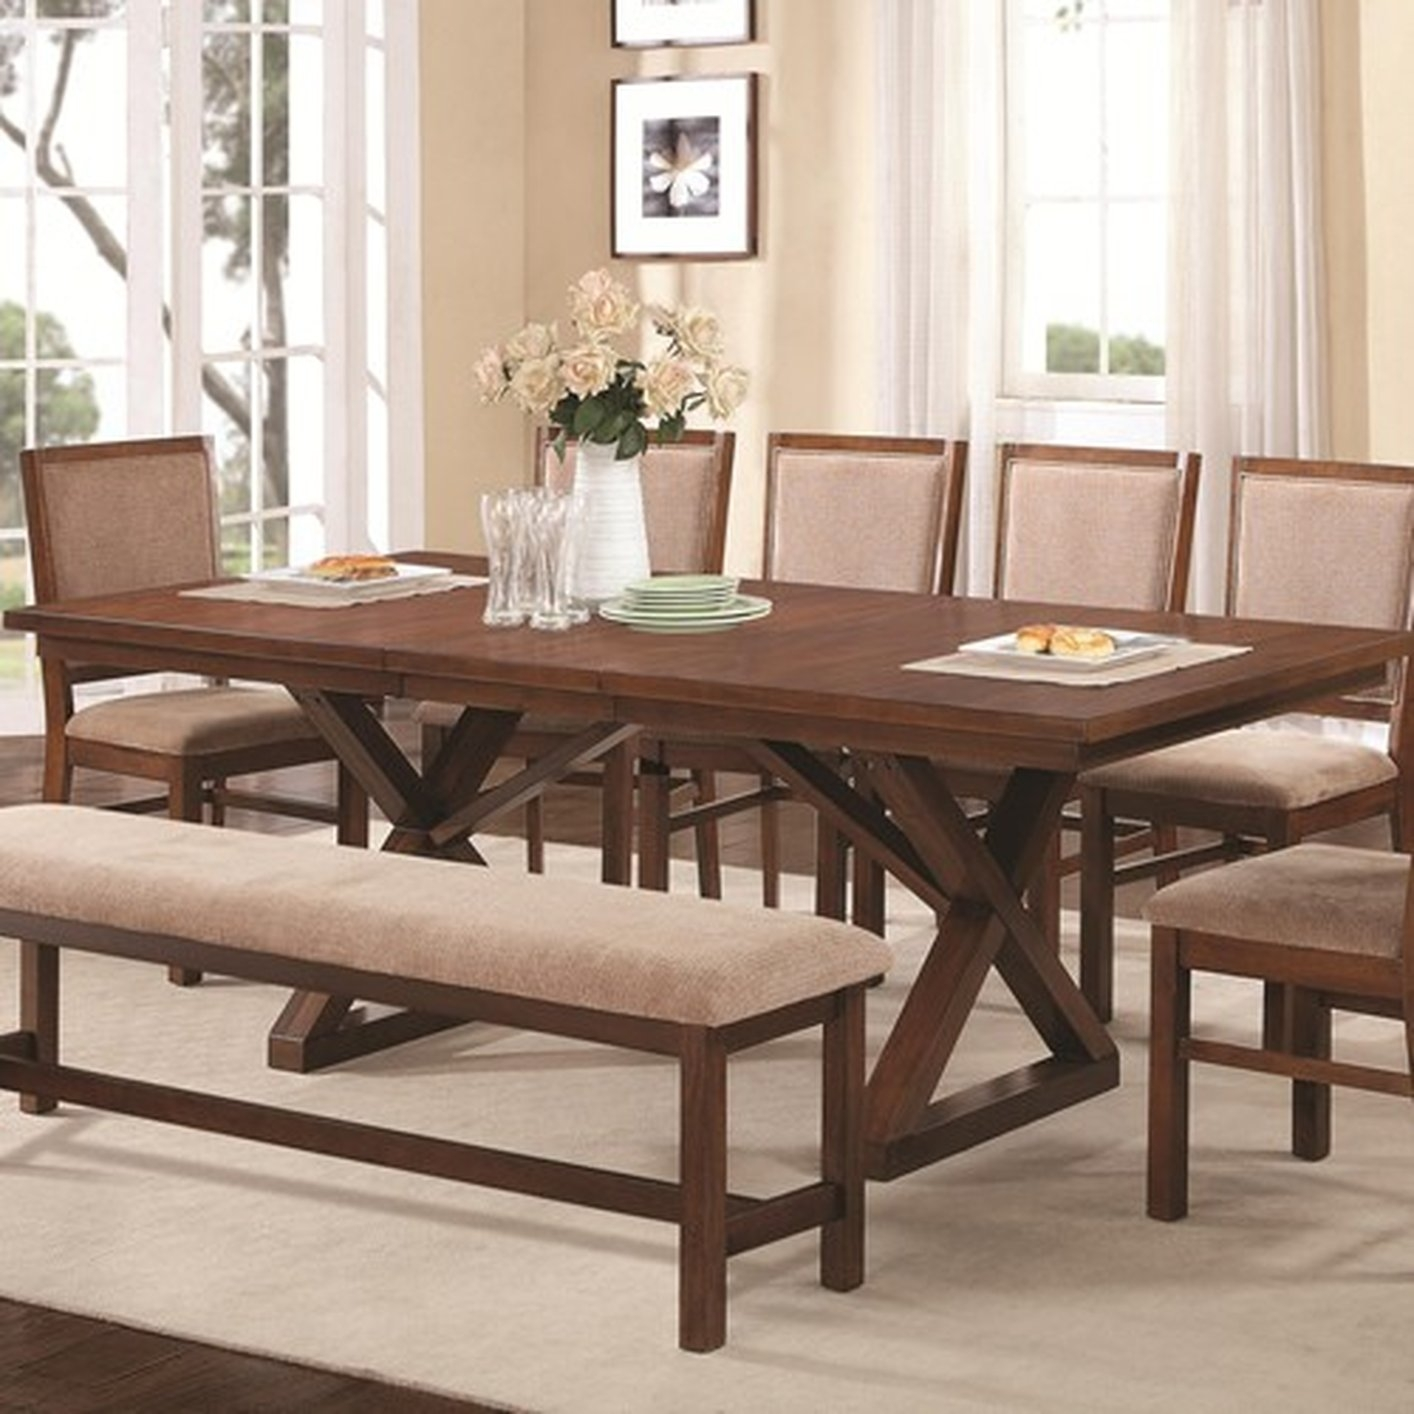 Featured Image of Dining Table With Sofa Chairs